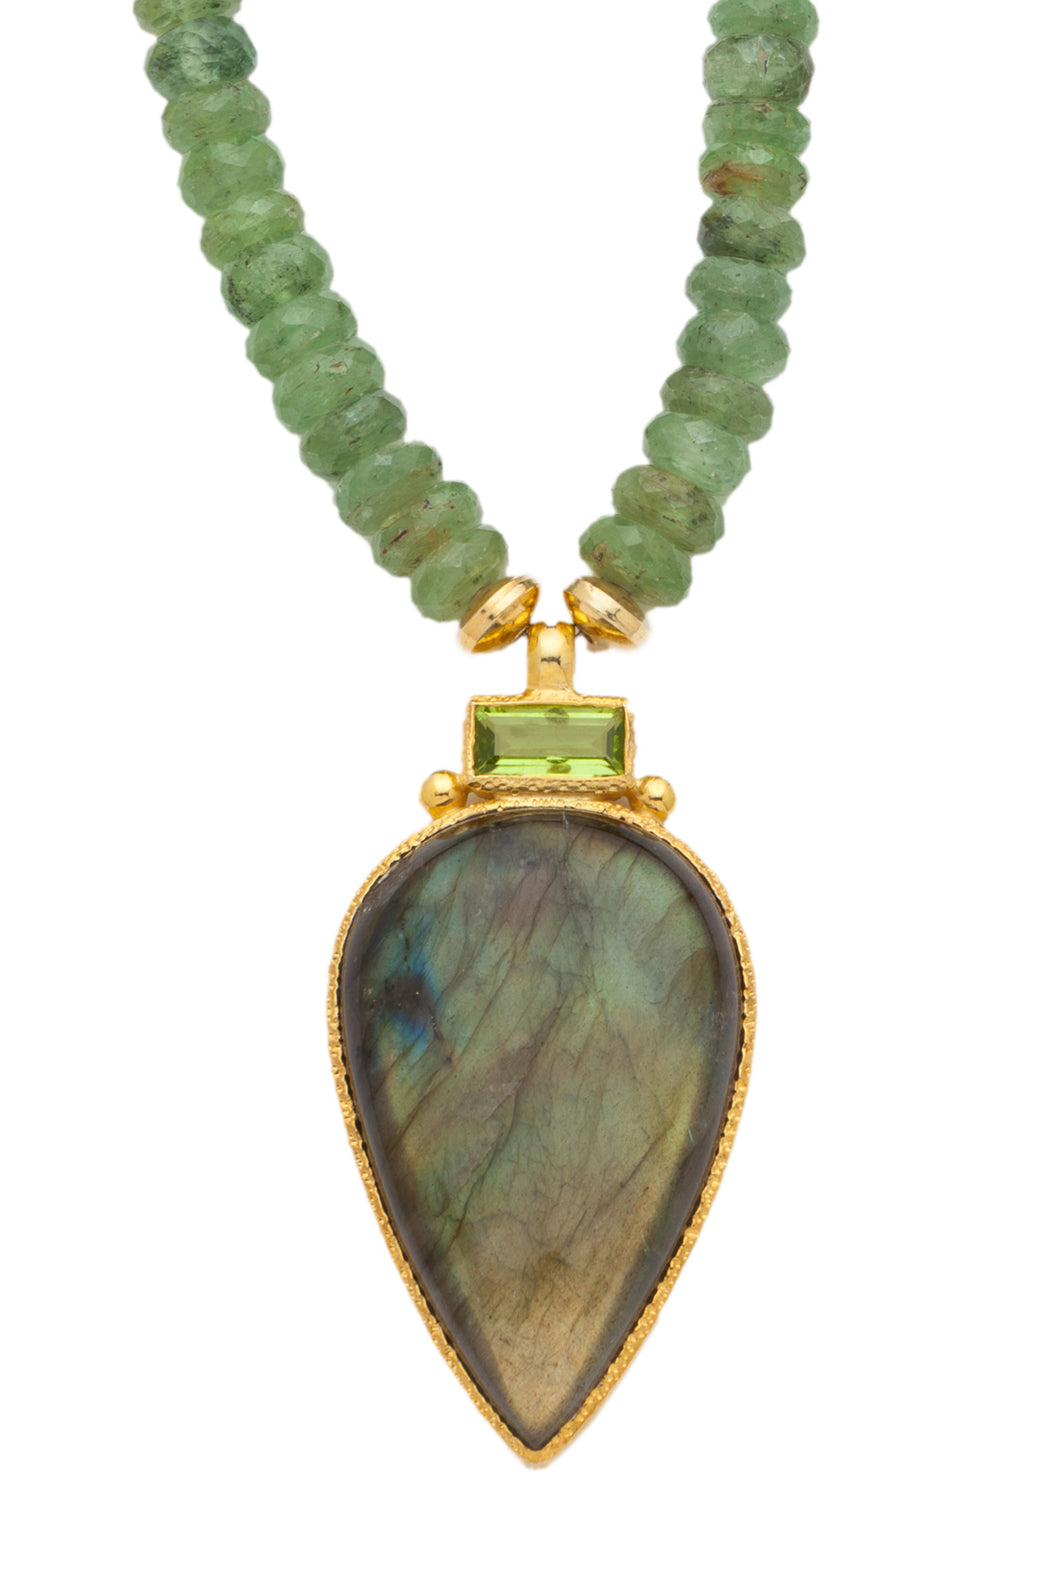 ONE OF A KIND Green Kyanite Necklace with Peridot and Labradorite Pendant set in 24kt gold vermeil  NF301-GKPL